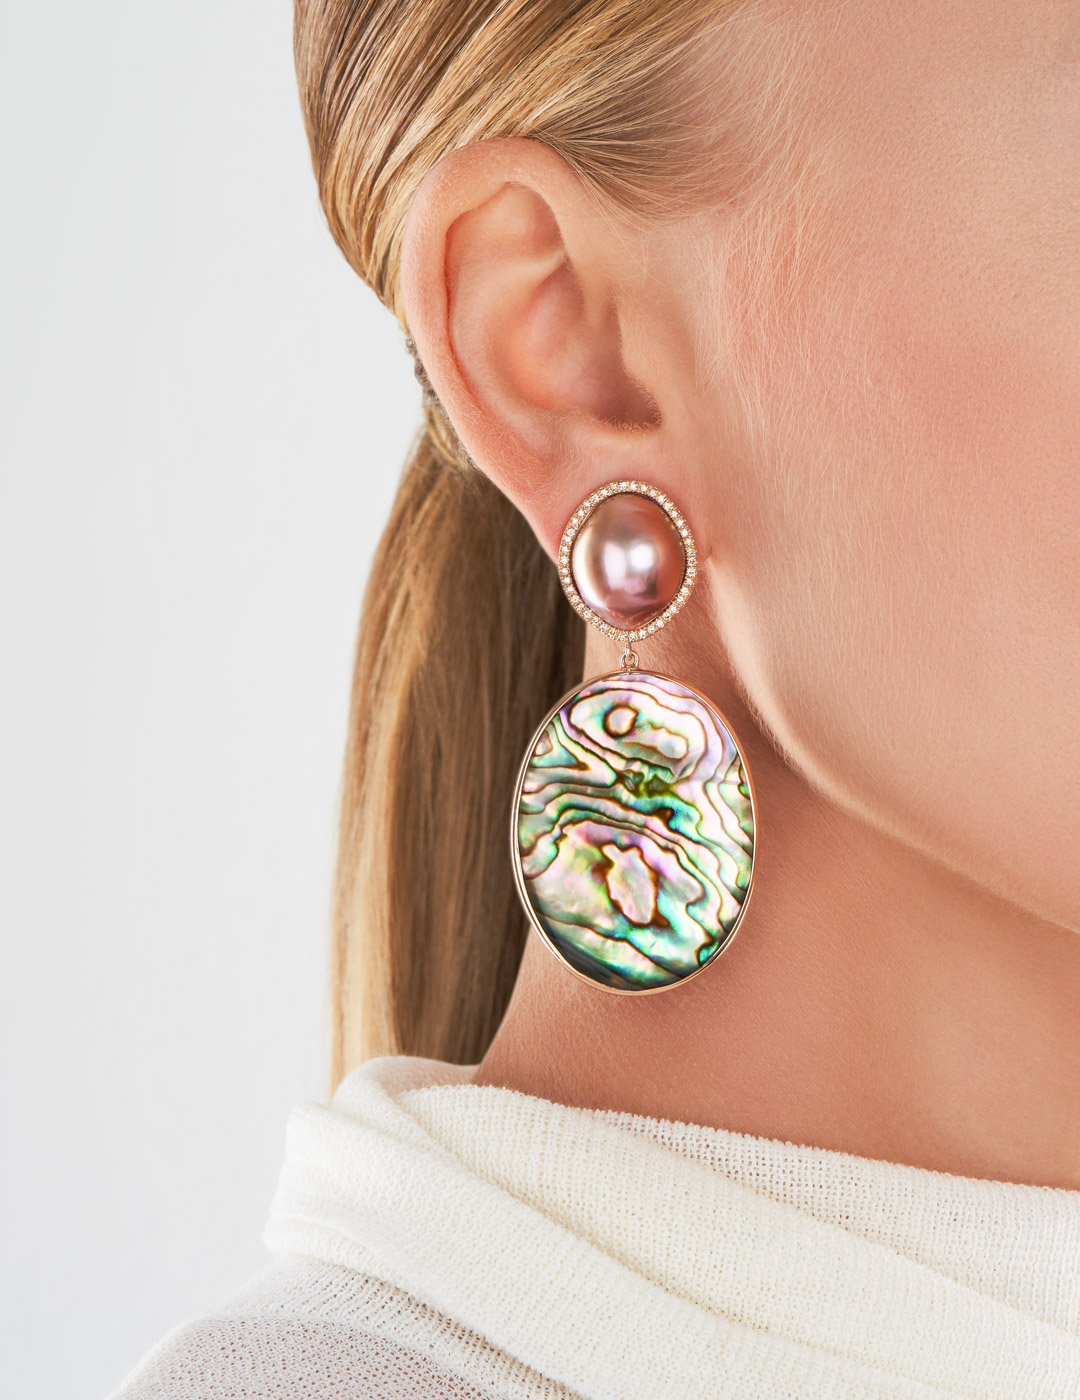 mish_products_earrings_Makena-PnkAbalone-ER-2